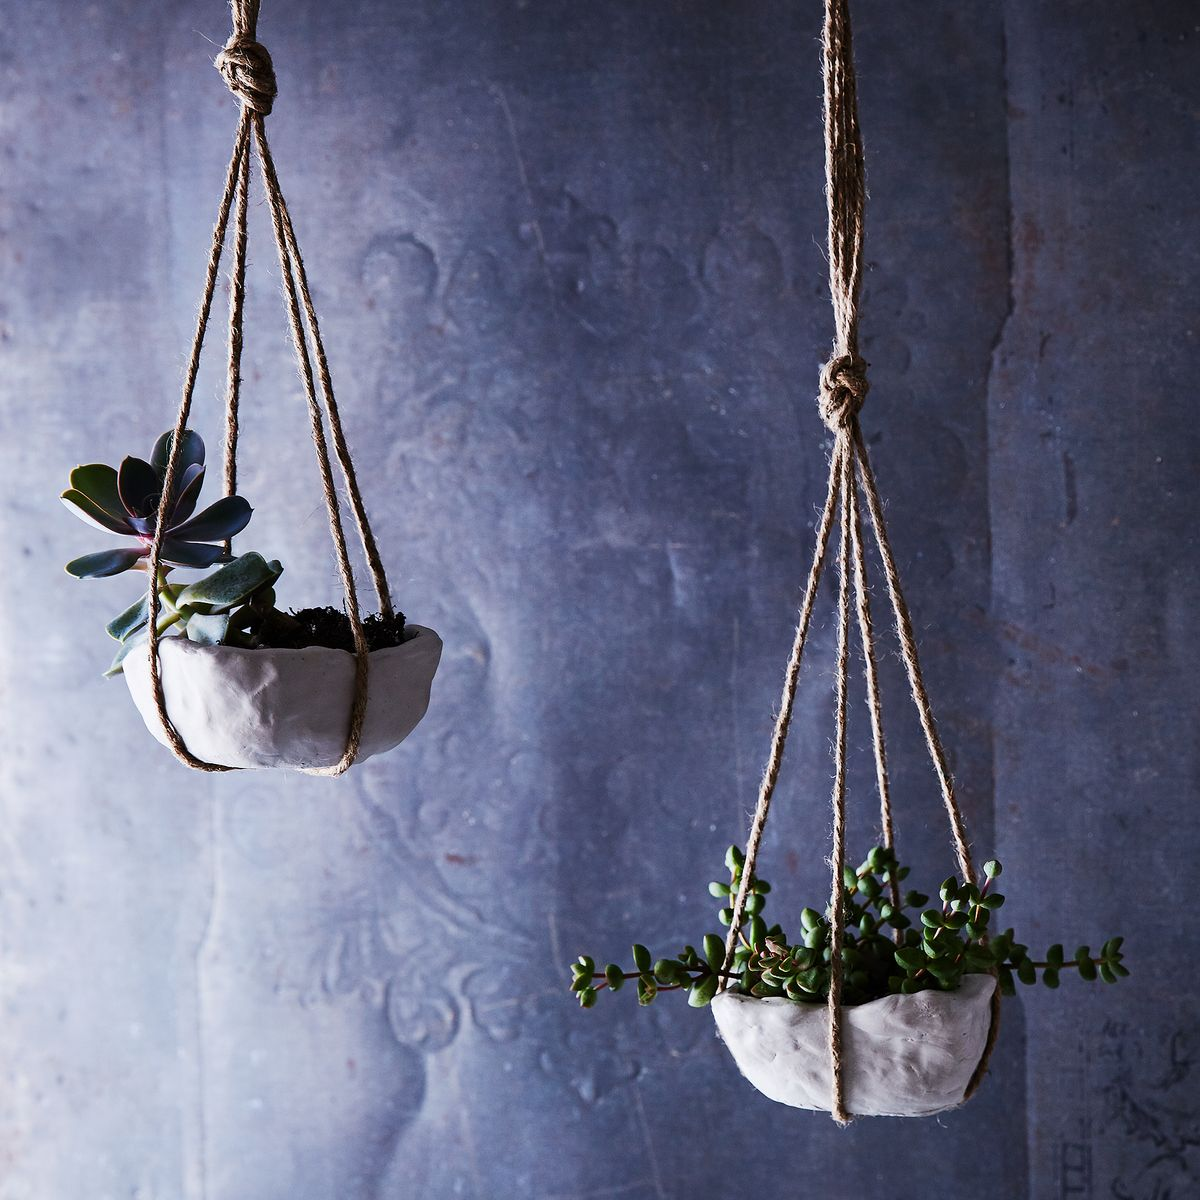 pinch pots make a comeback in diy air dry hanging planters - Diy Hanging Planter